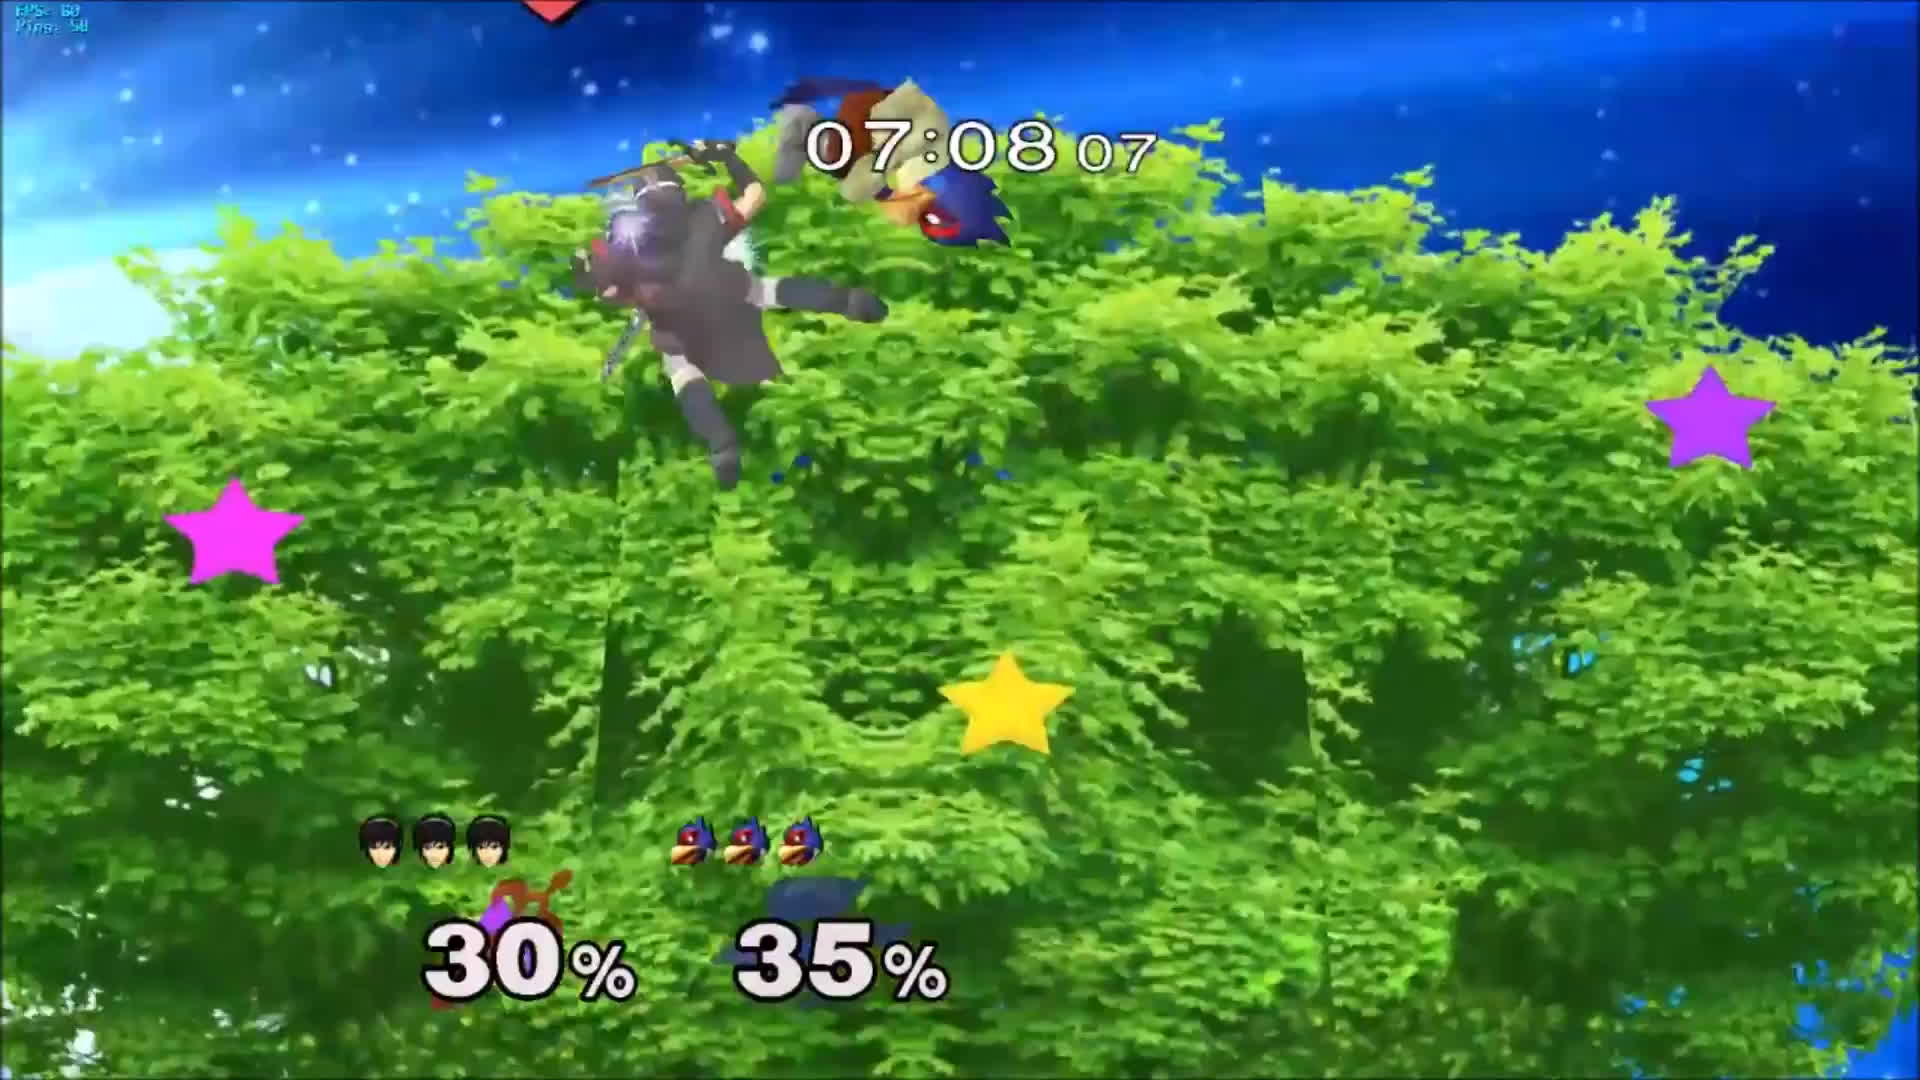 project m, rivals of aether, super smash brothers melee, di in GIFs